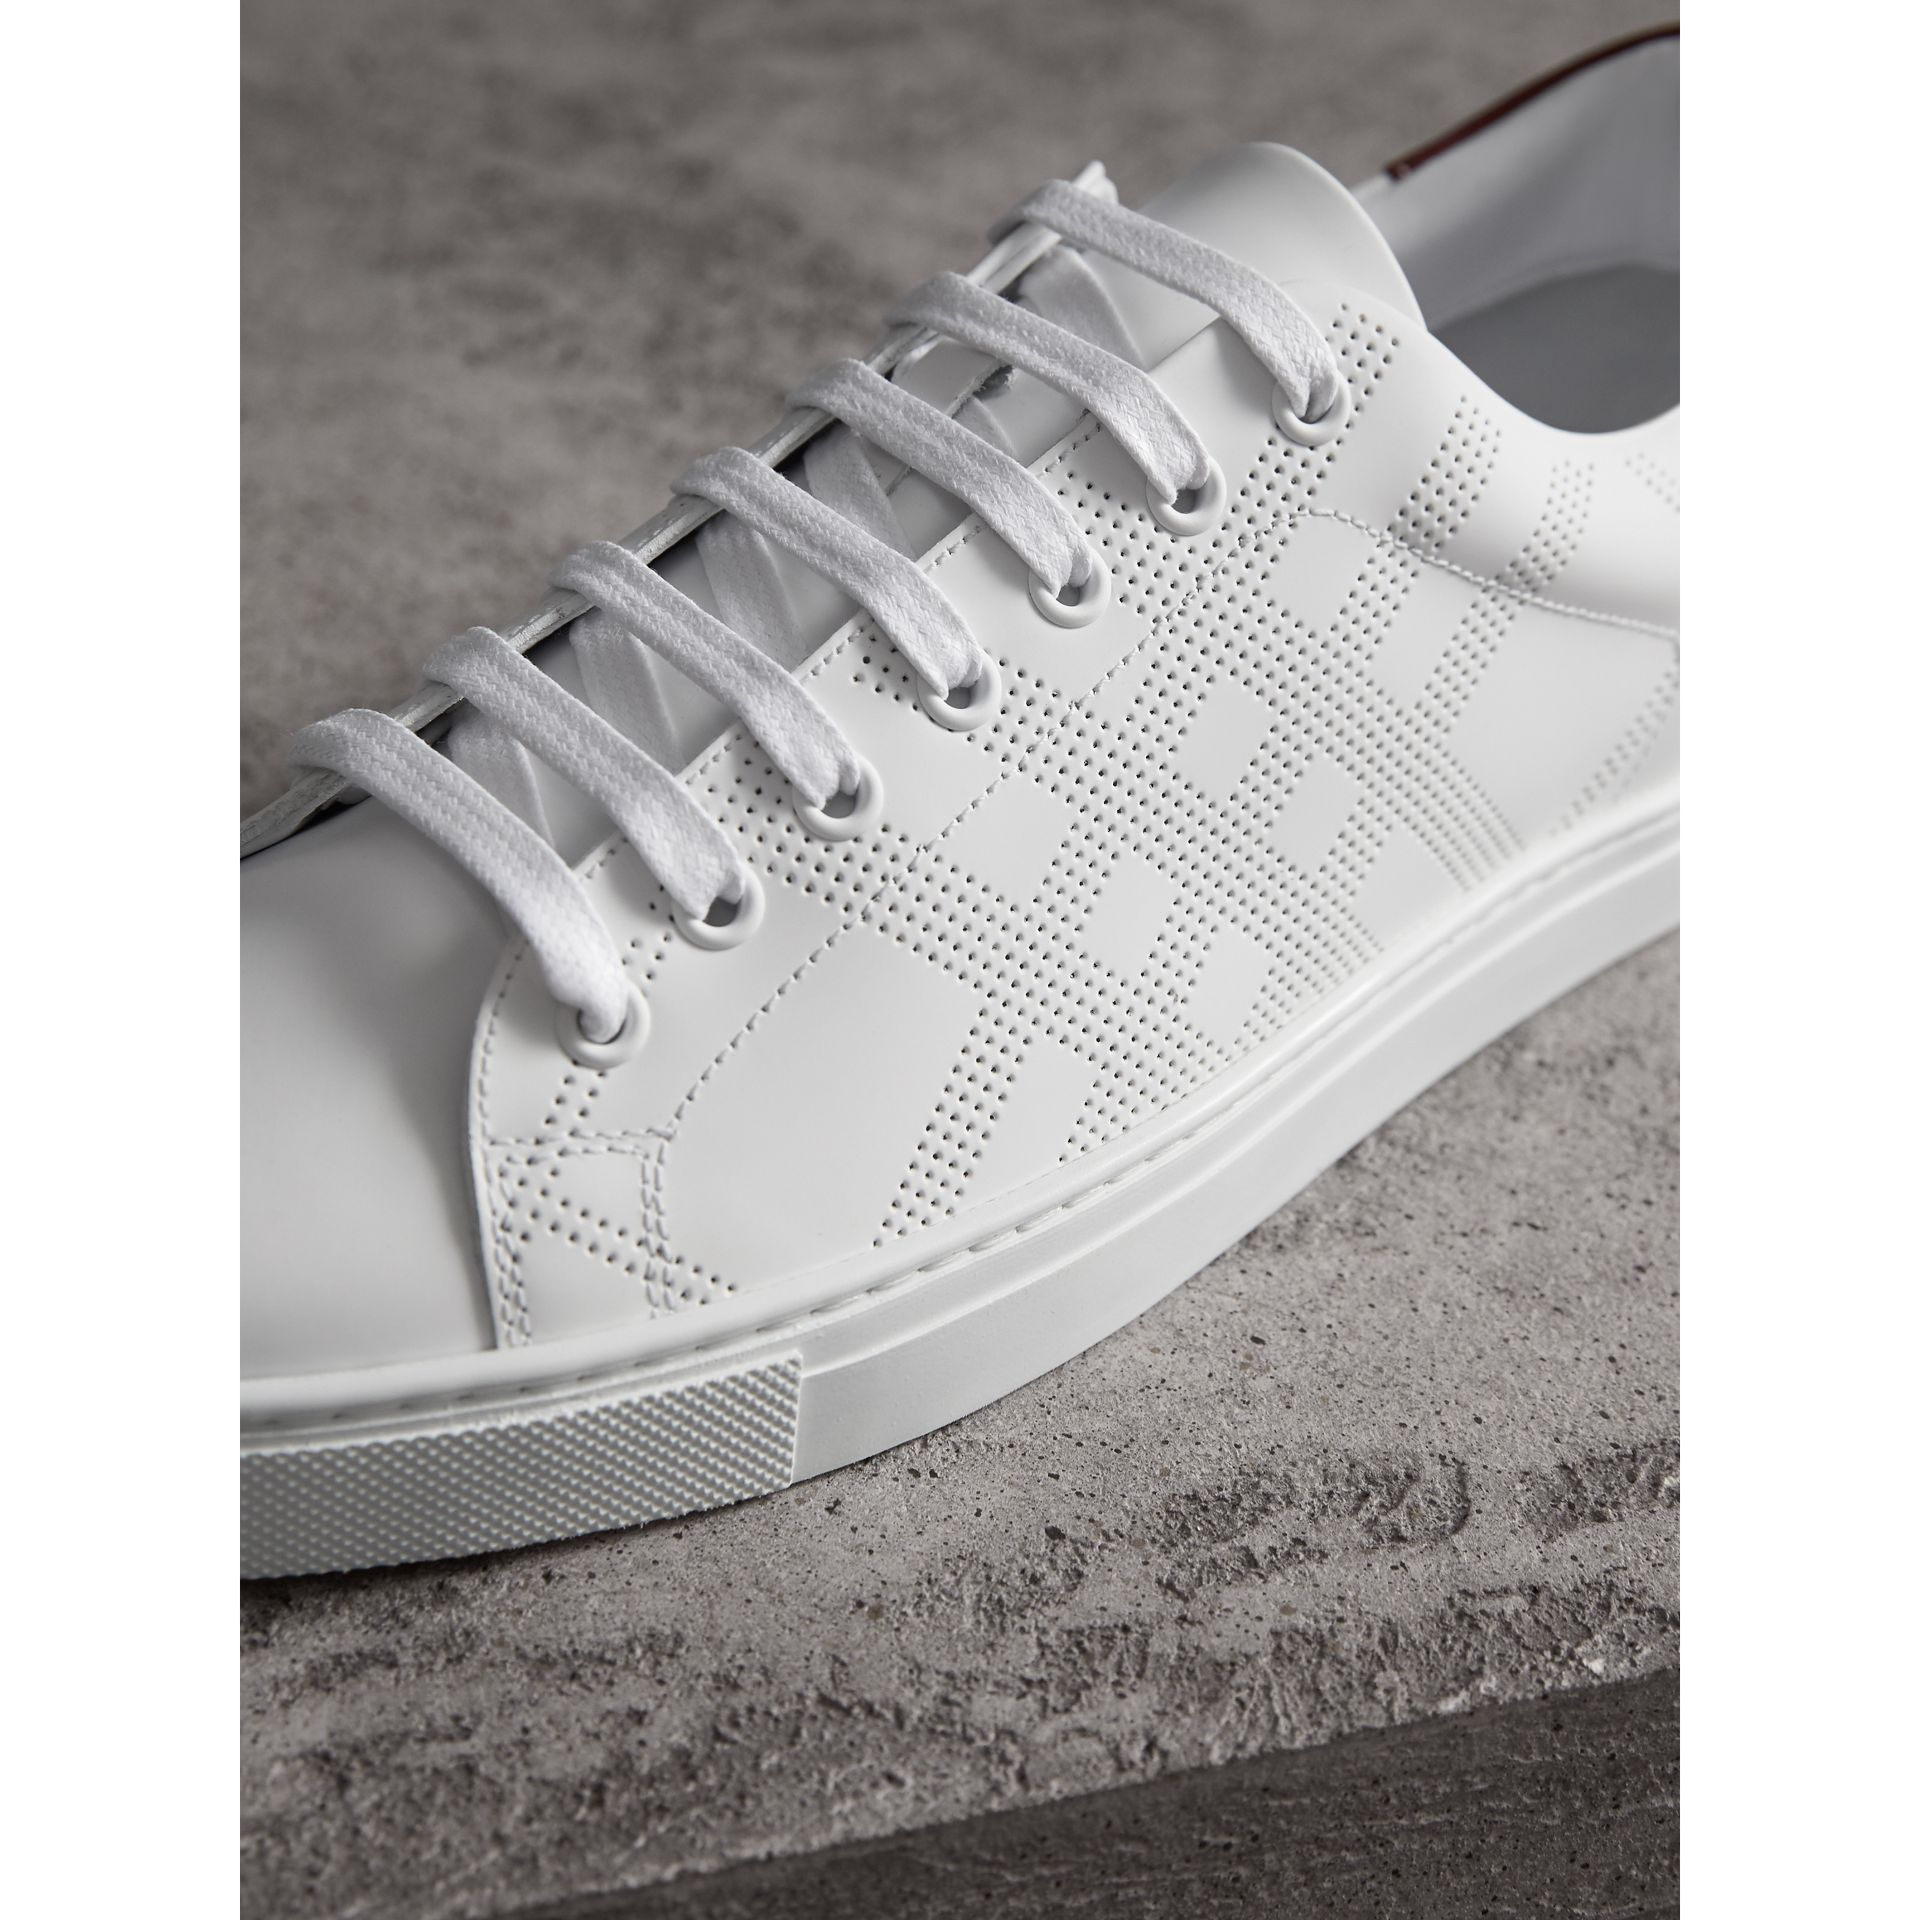 Sneakers en cuir à motif check perforé (Blanc Optique) - Homme | Burberry - photo de la galerie 1